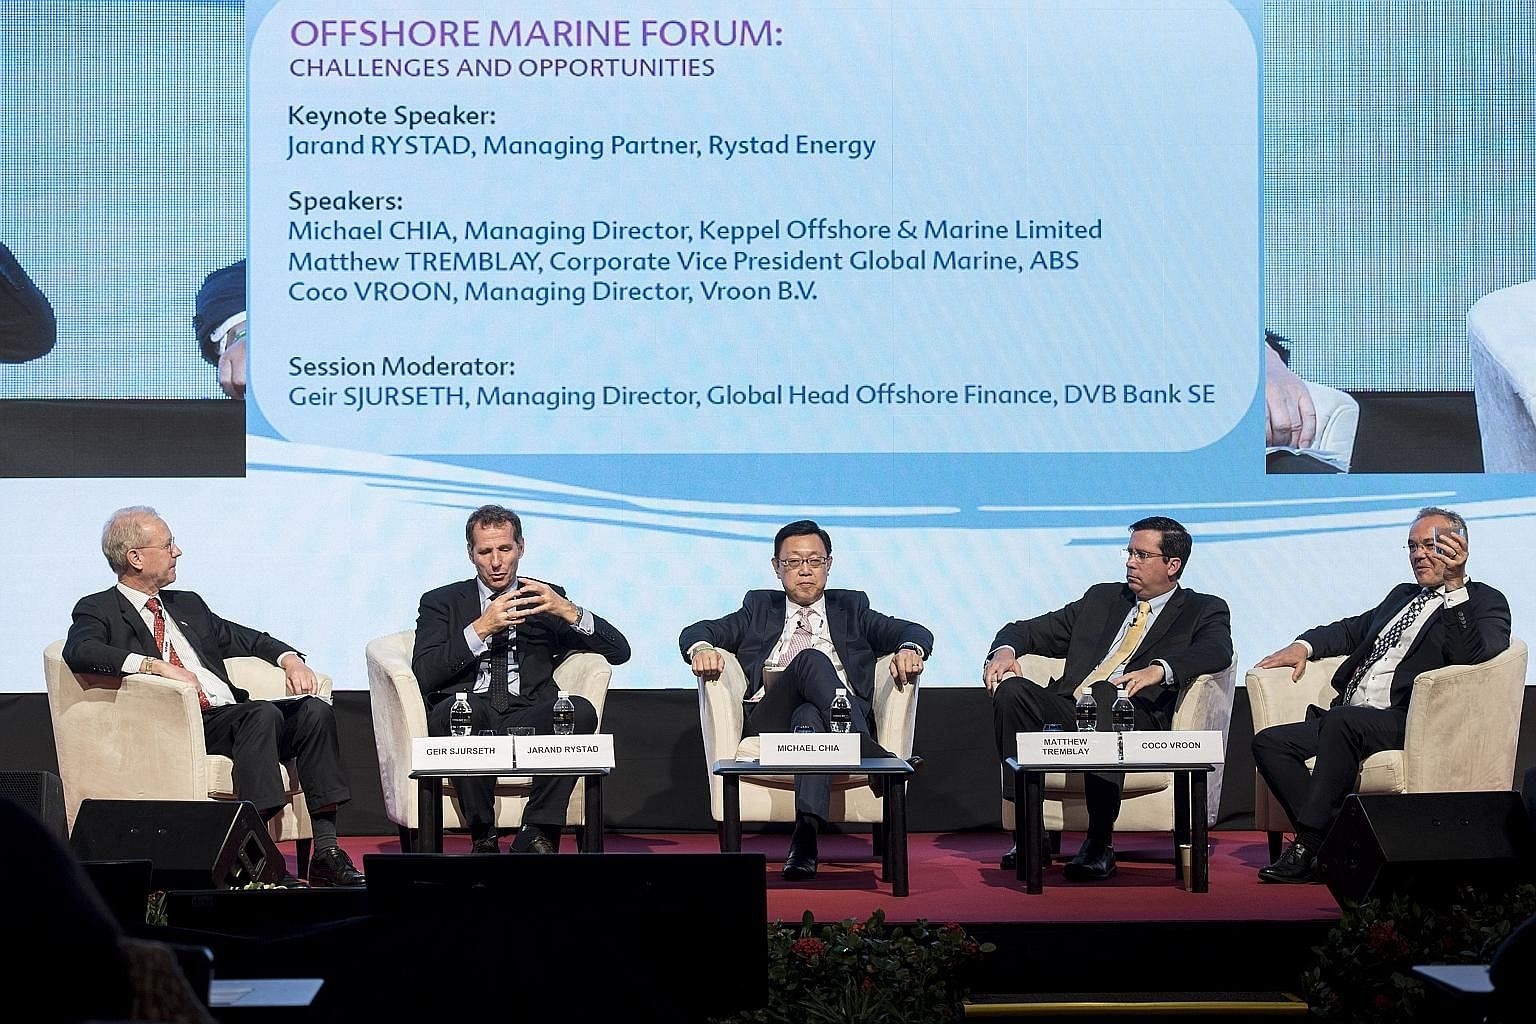 (From left) Mr Geir Sjurseth, managing director and global head offshore finance at DVB Bank, with Rystad Energy managing partner Jarand Rystad, Keppel Offshore & Marine managing director Michael Chia, ABS corporate vice-president for global marine M